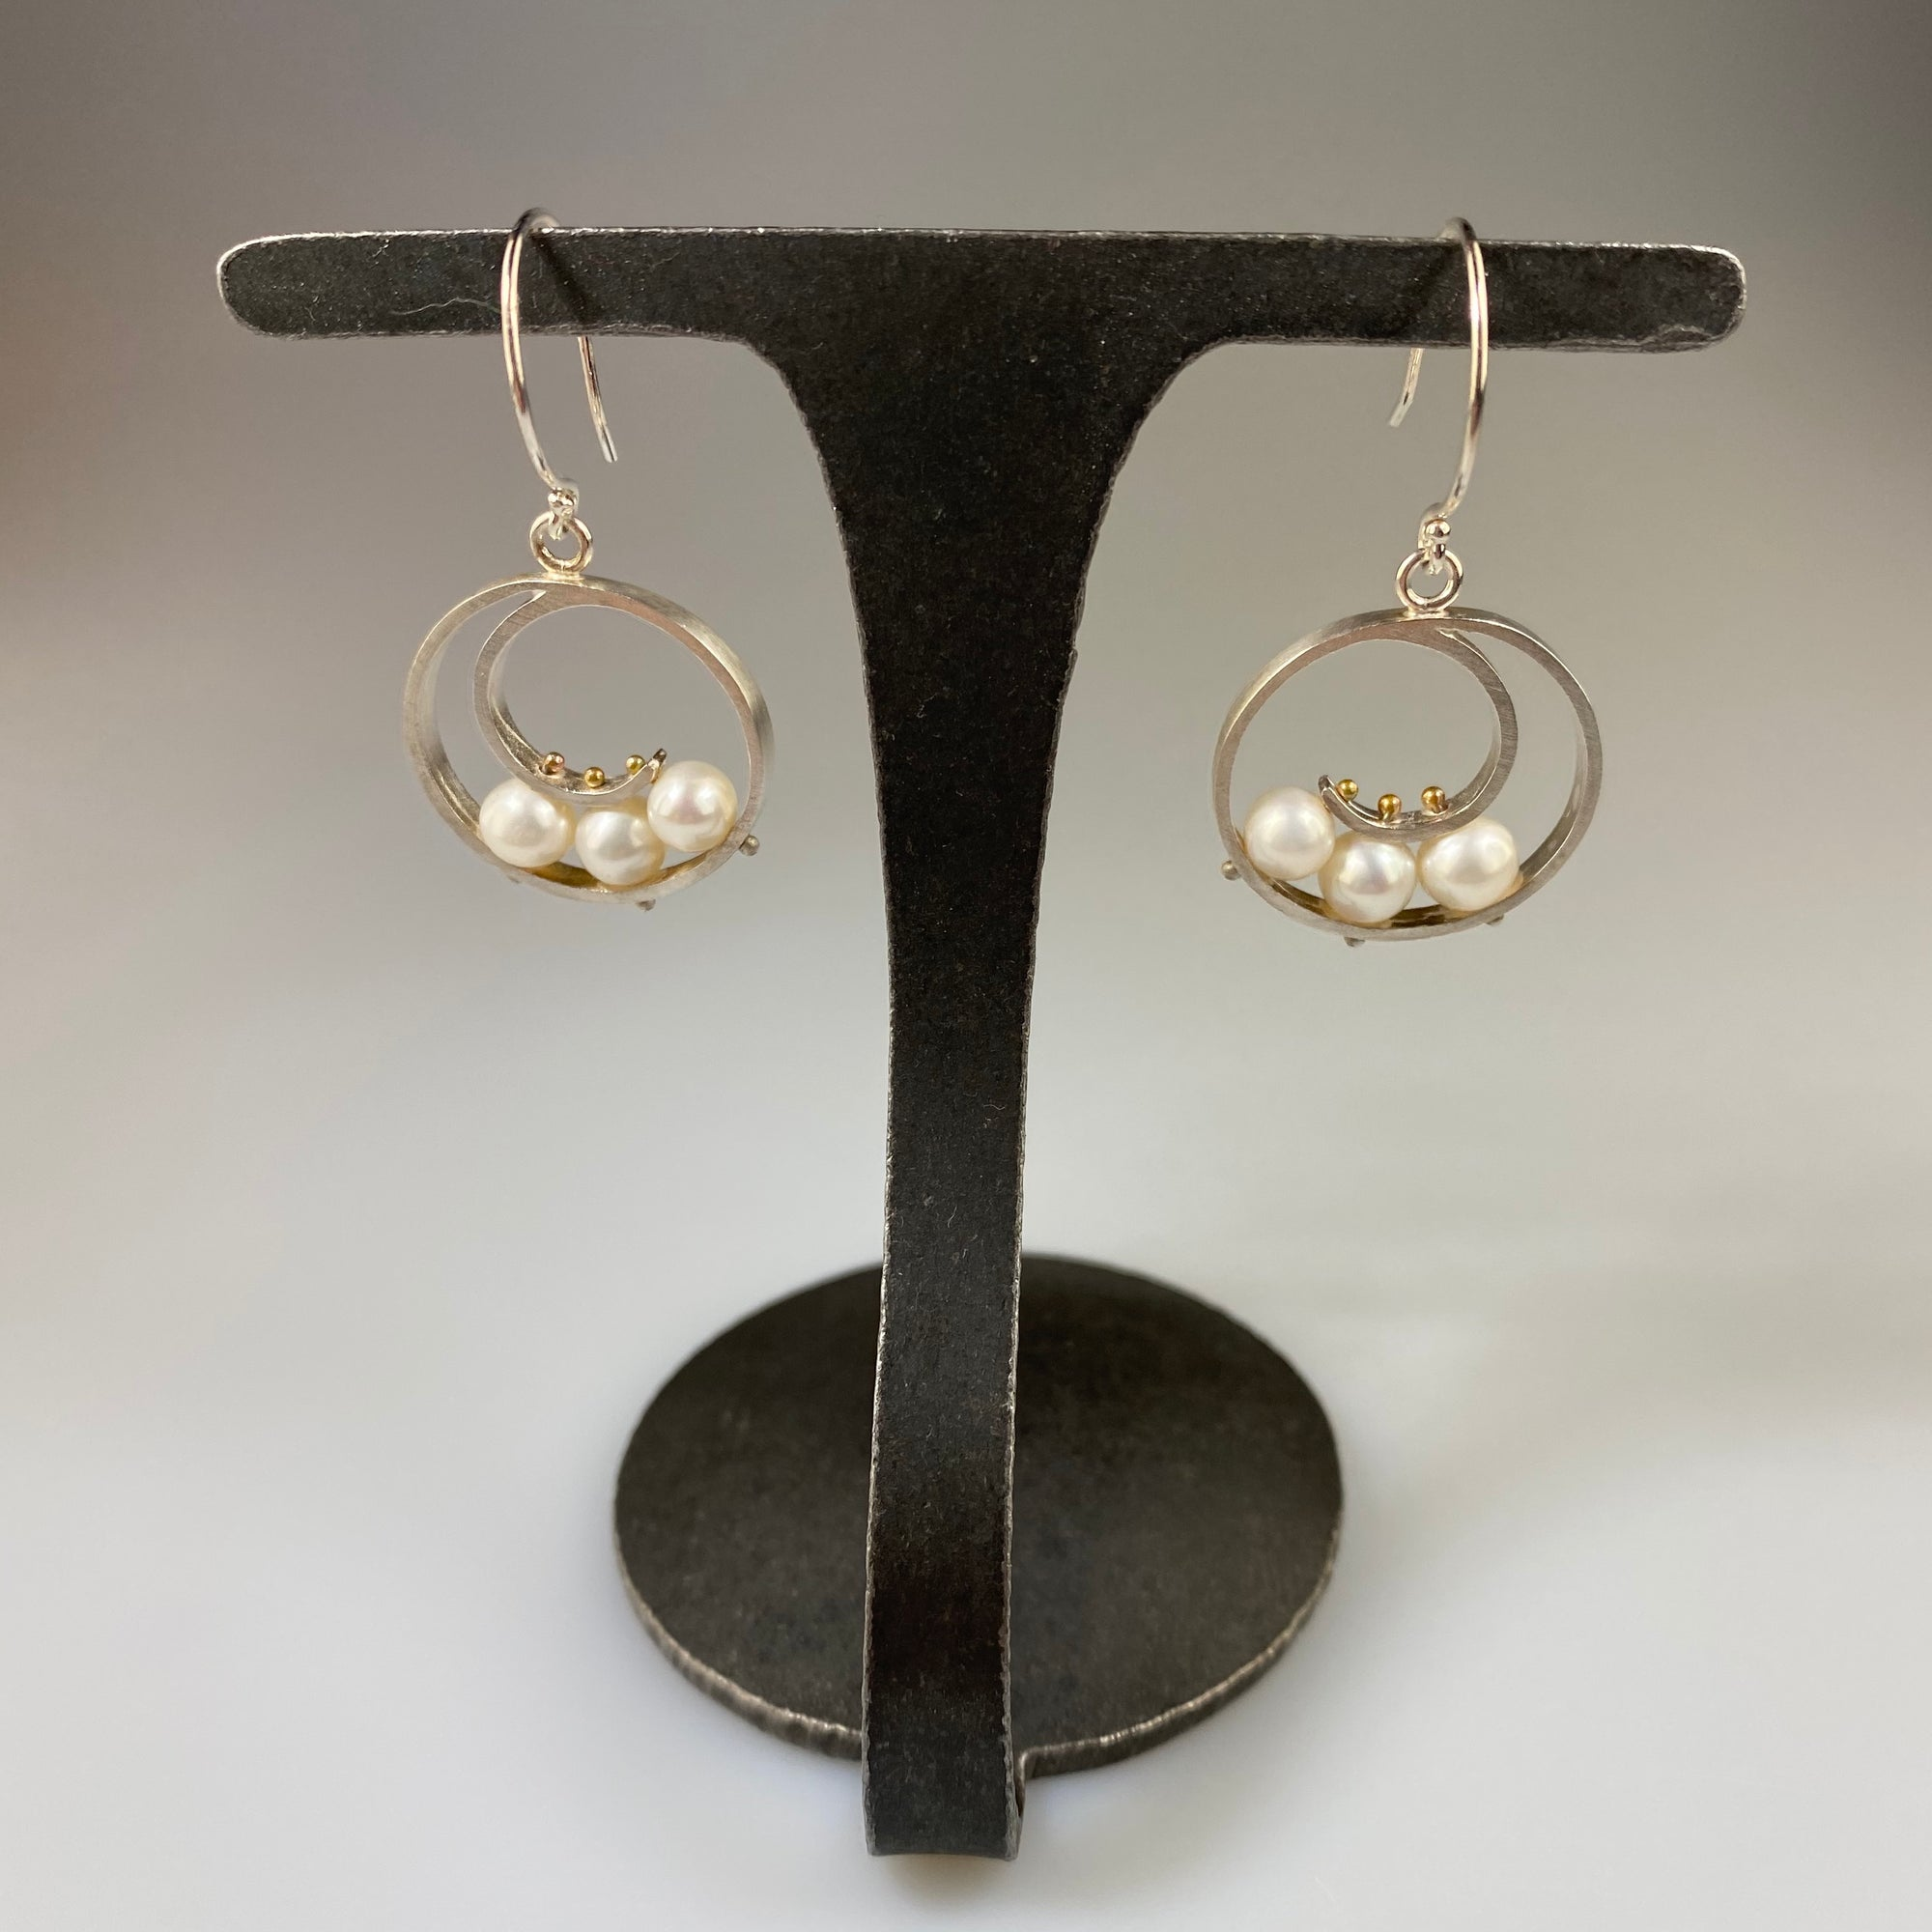 Medium Spiral Earrings with White Pearl - Heart of the Home PA